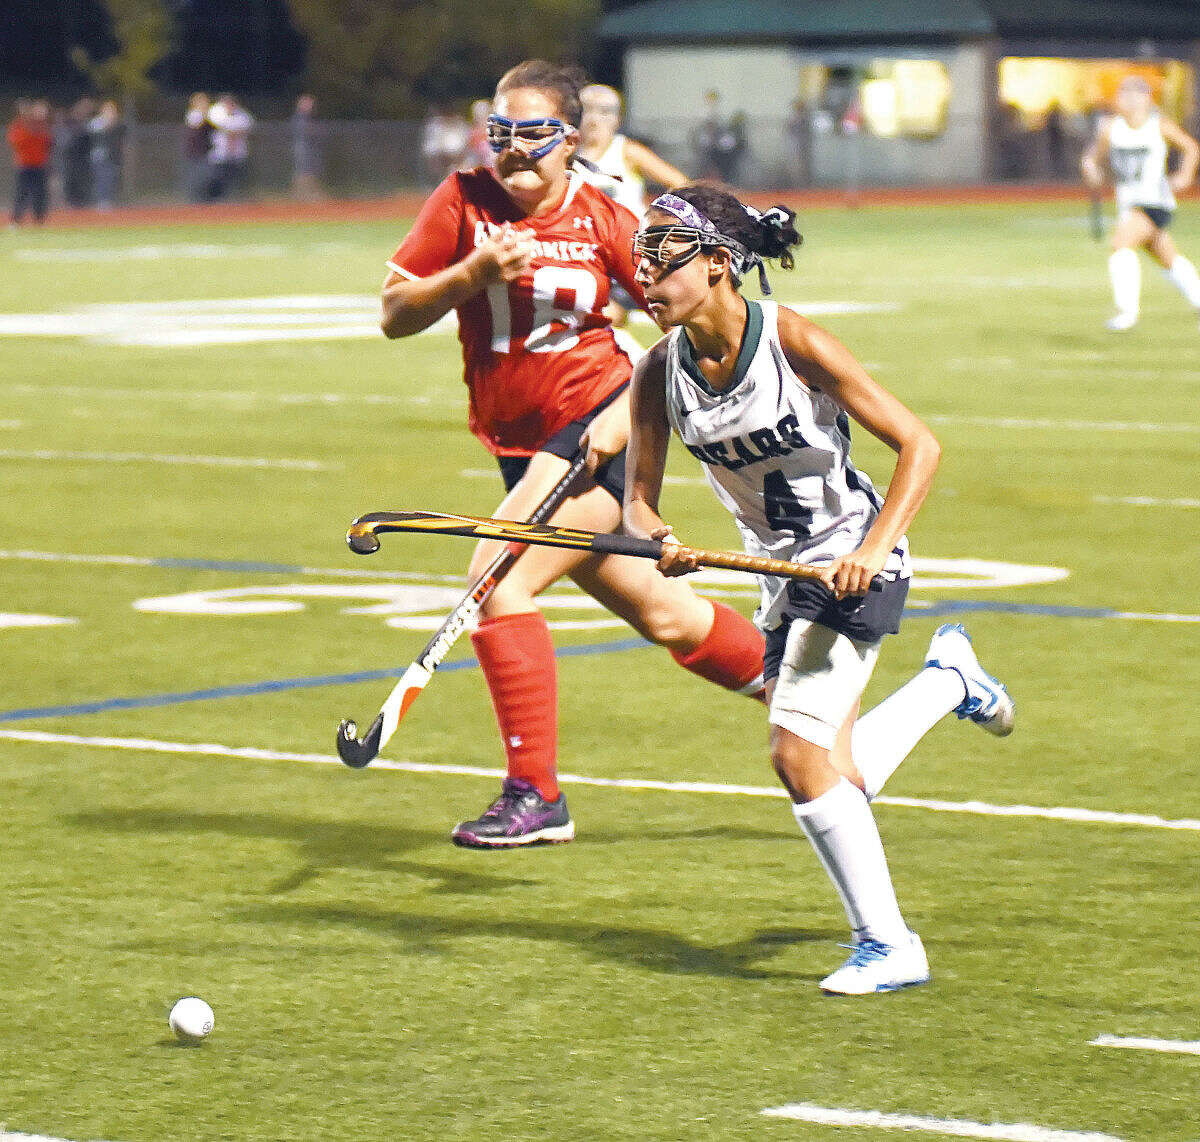 """Hour photo/John Nash - Marissa """"Mouse"""" Mastrianni (4) of Norwalk races past the Greenwich defense during Monday's FCIAC field hockey game at Testa Field in Norwalk. The Bears won the game, 2-0."""